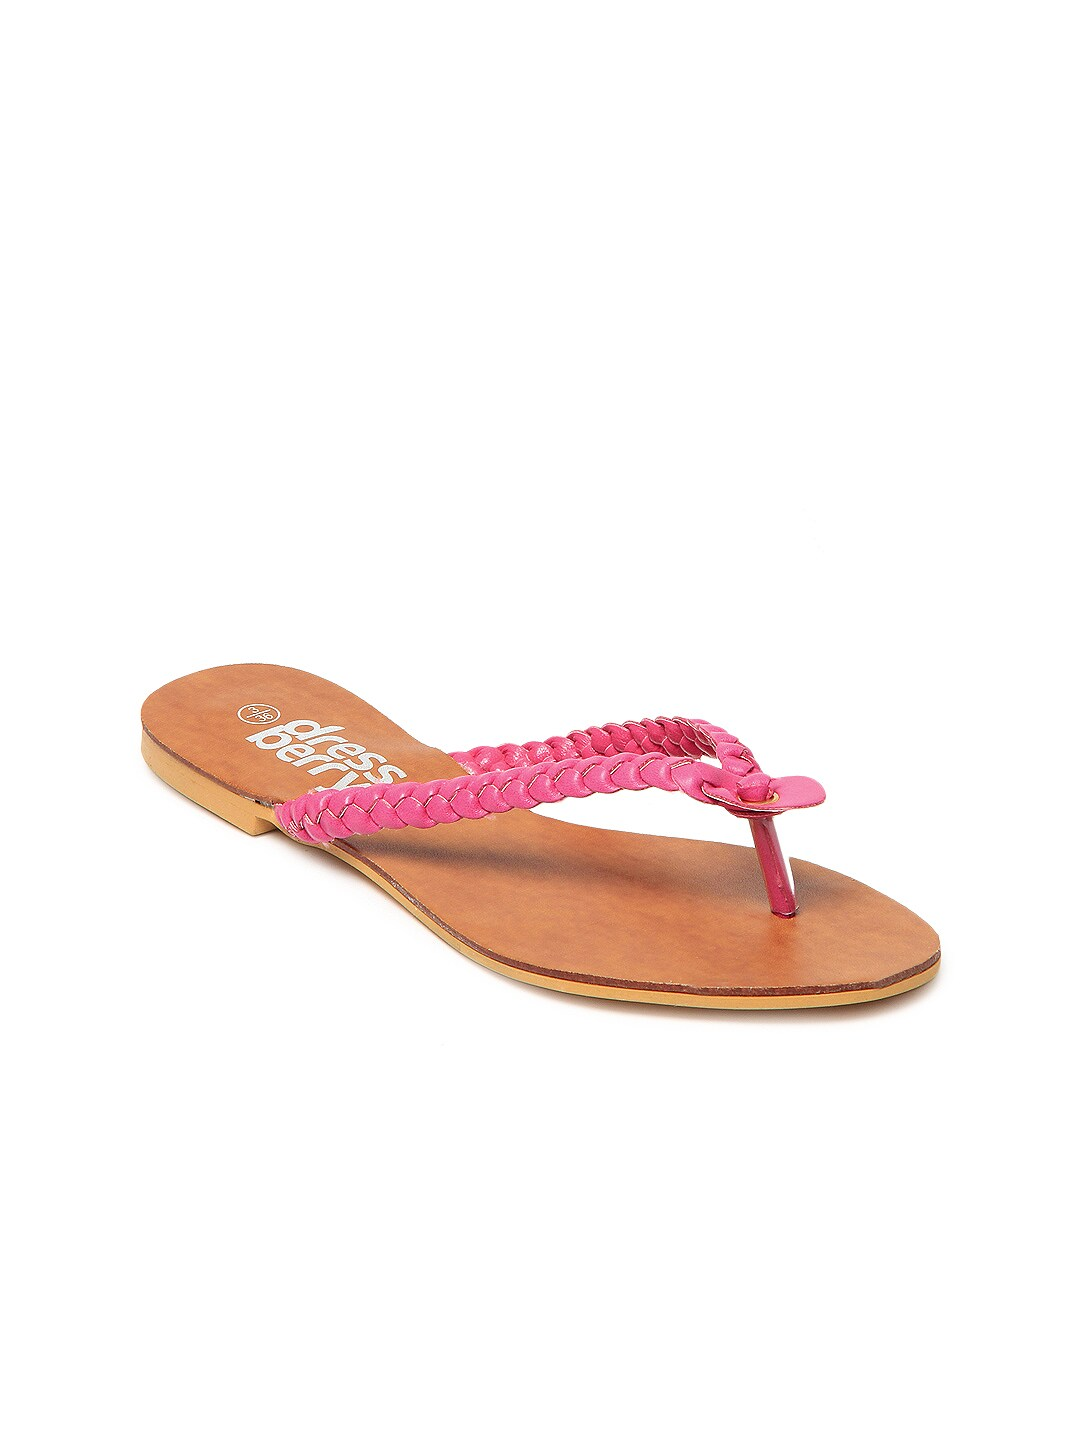 DressBerry Women Pink Sandals